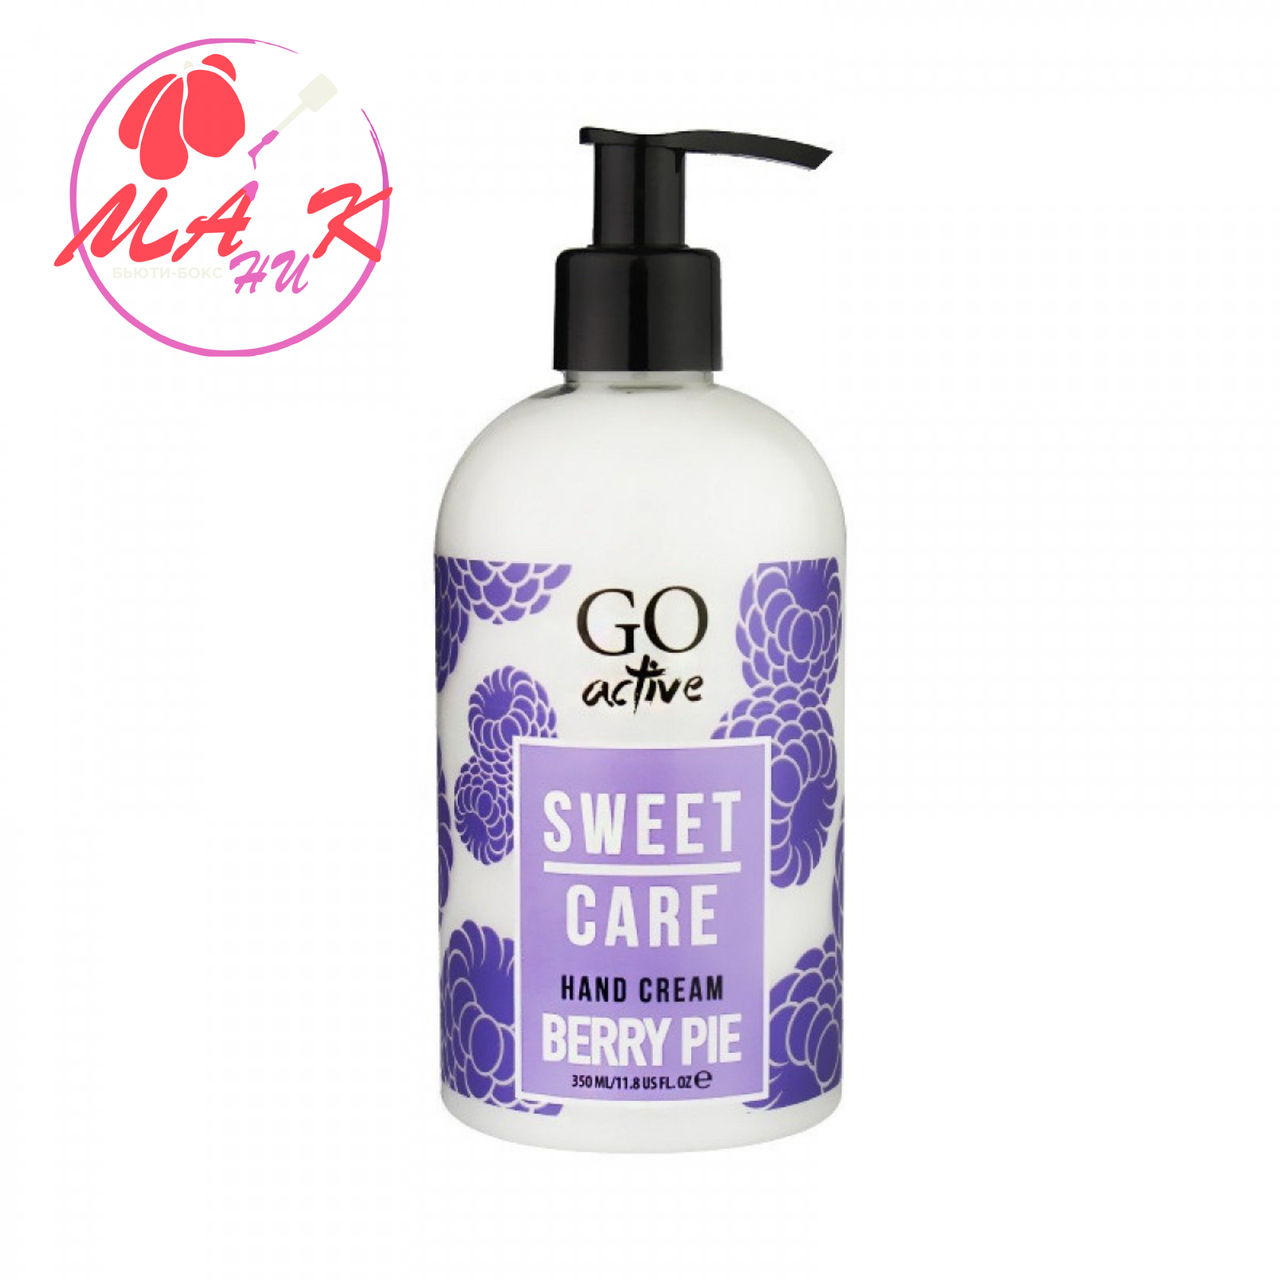 Крем для рук Go Active Hand Cream Berry Pie, 350 мл